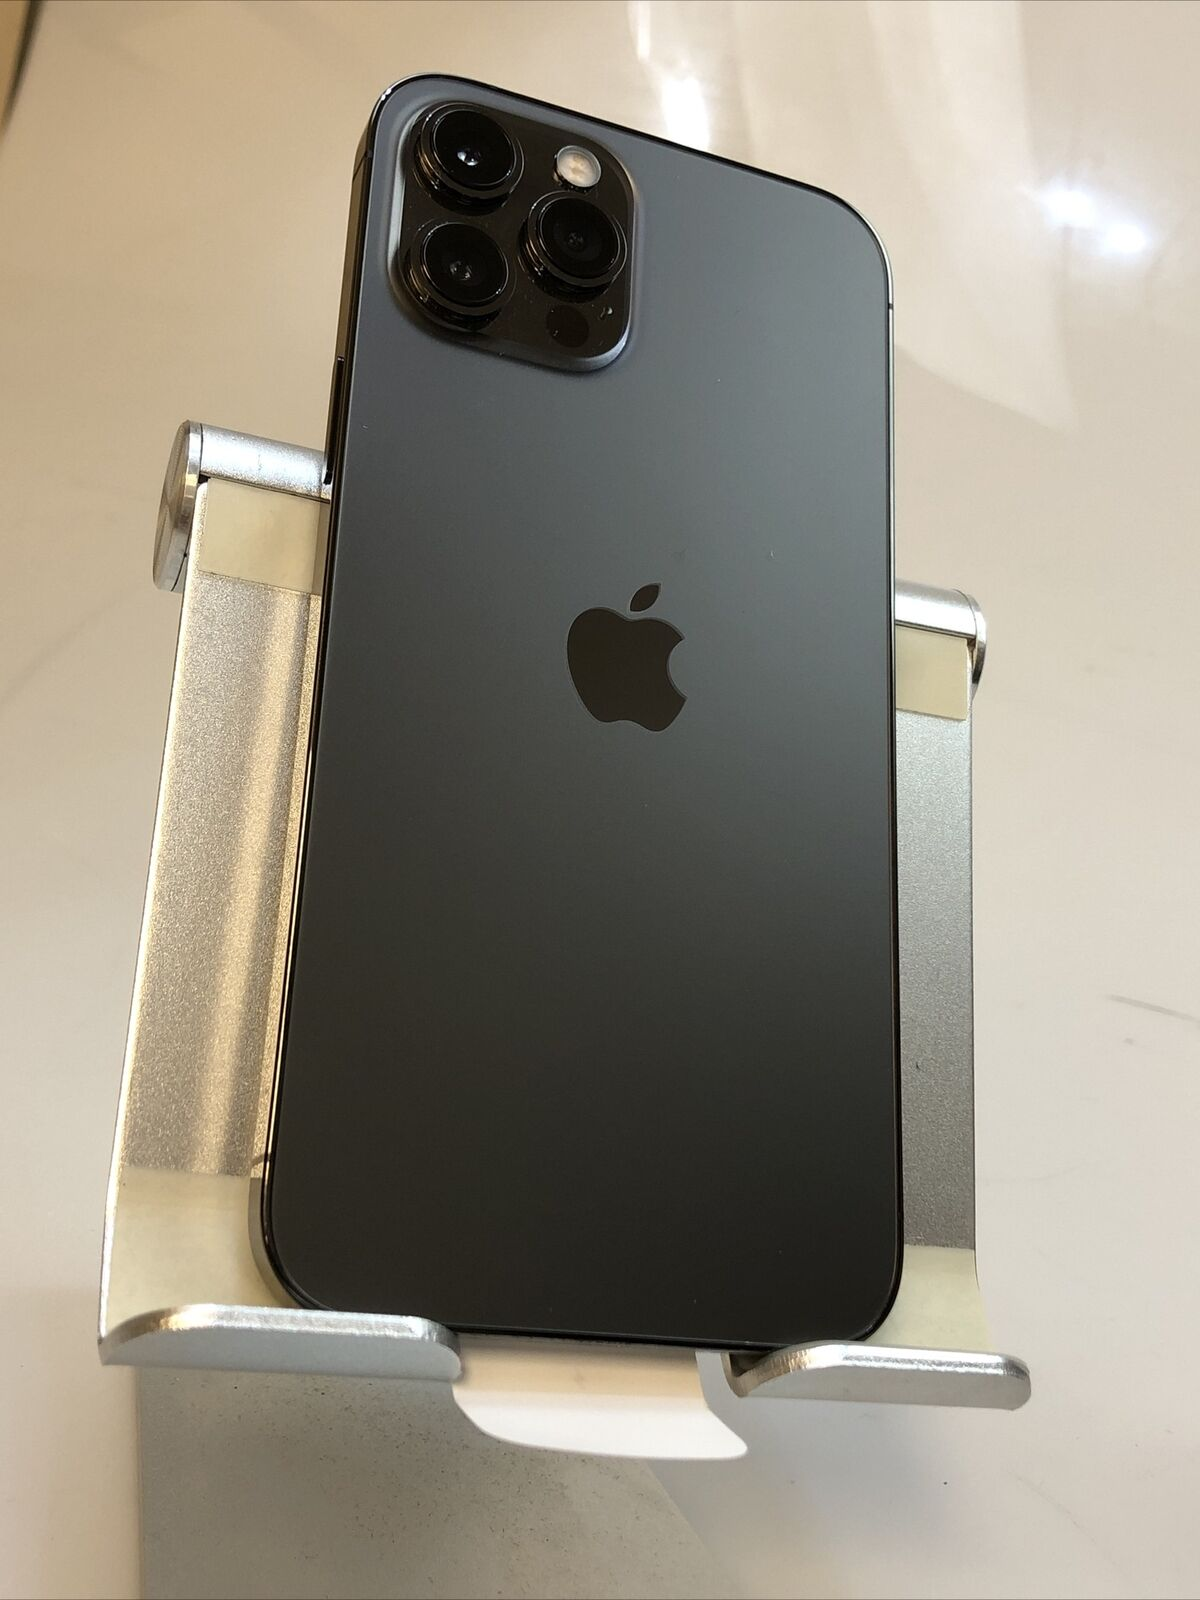 Apple iPhone 12 Pro Max 512Gb and PS 5